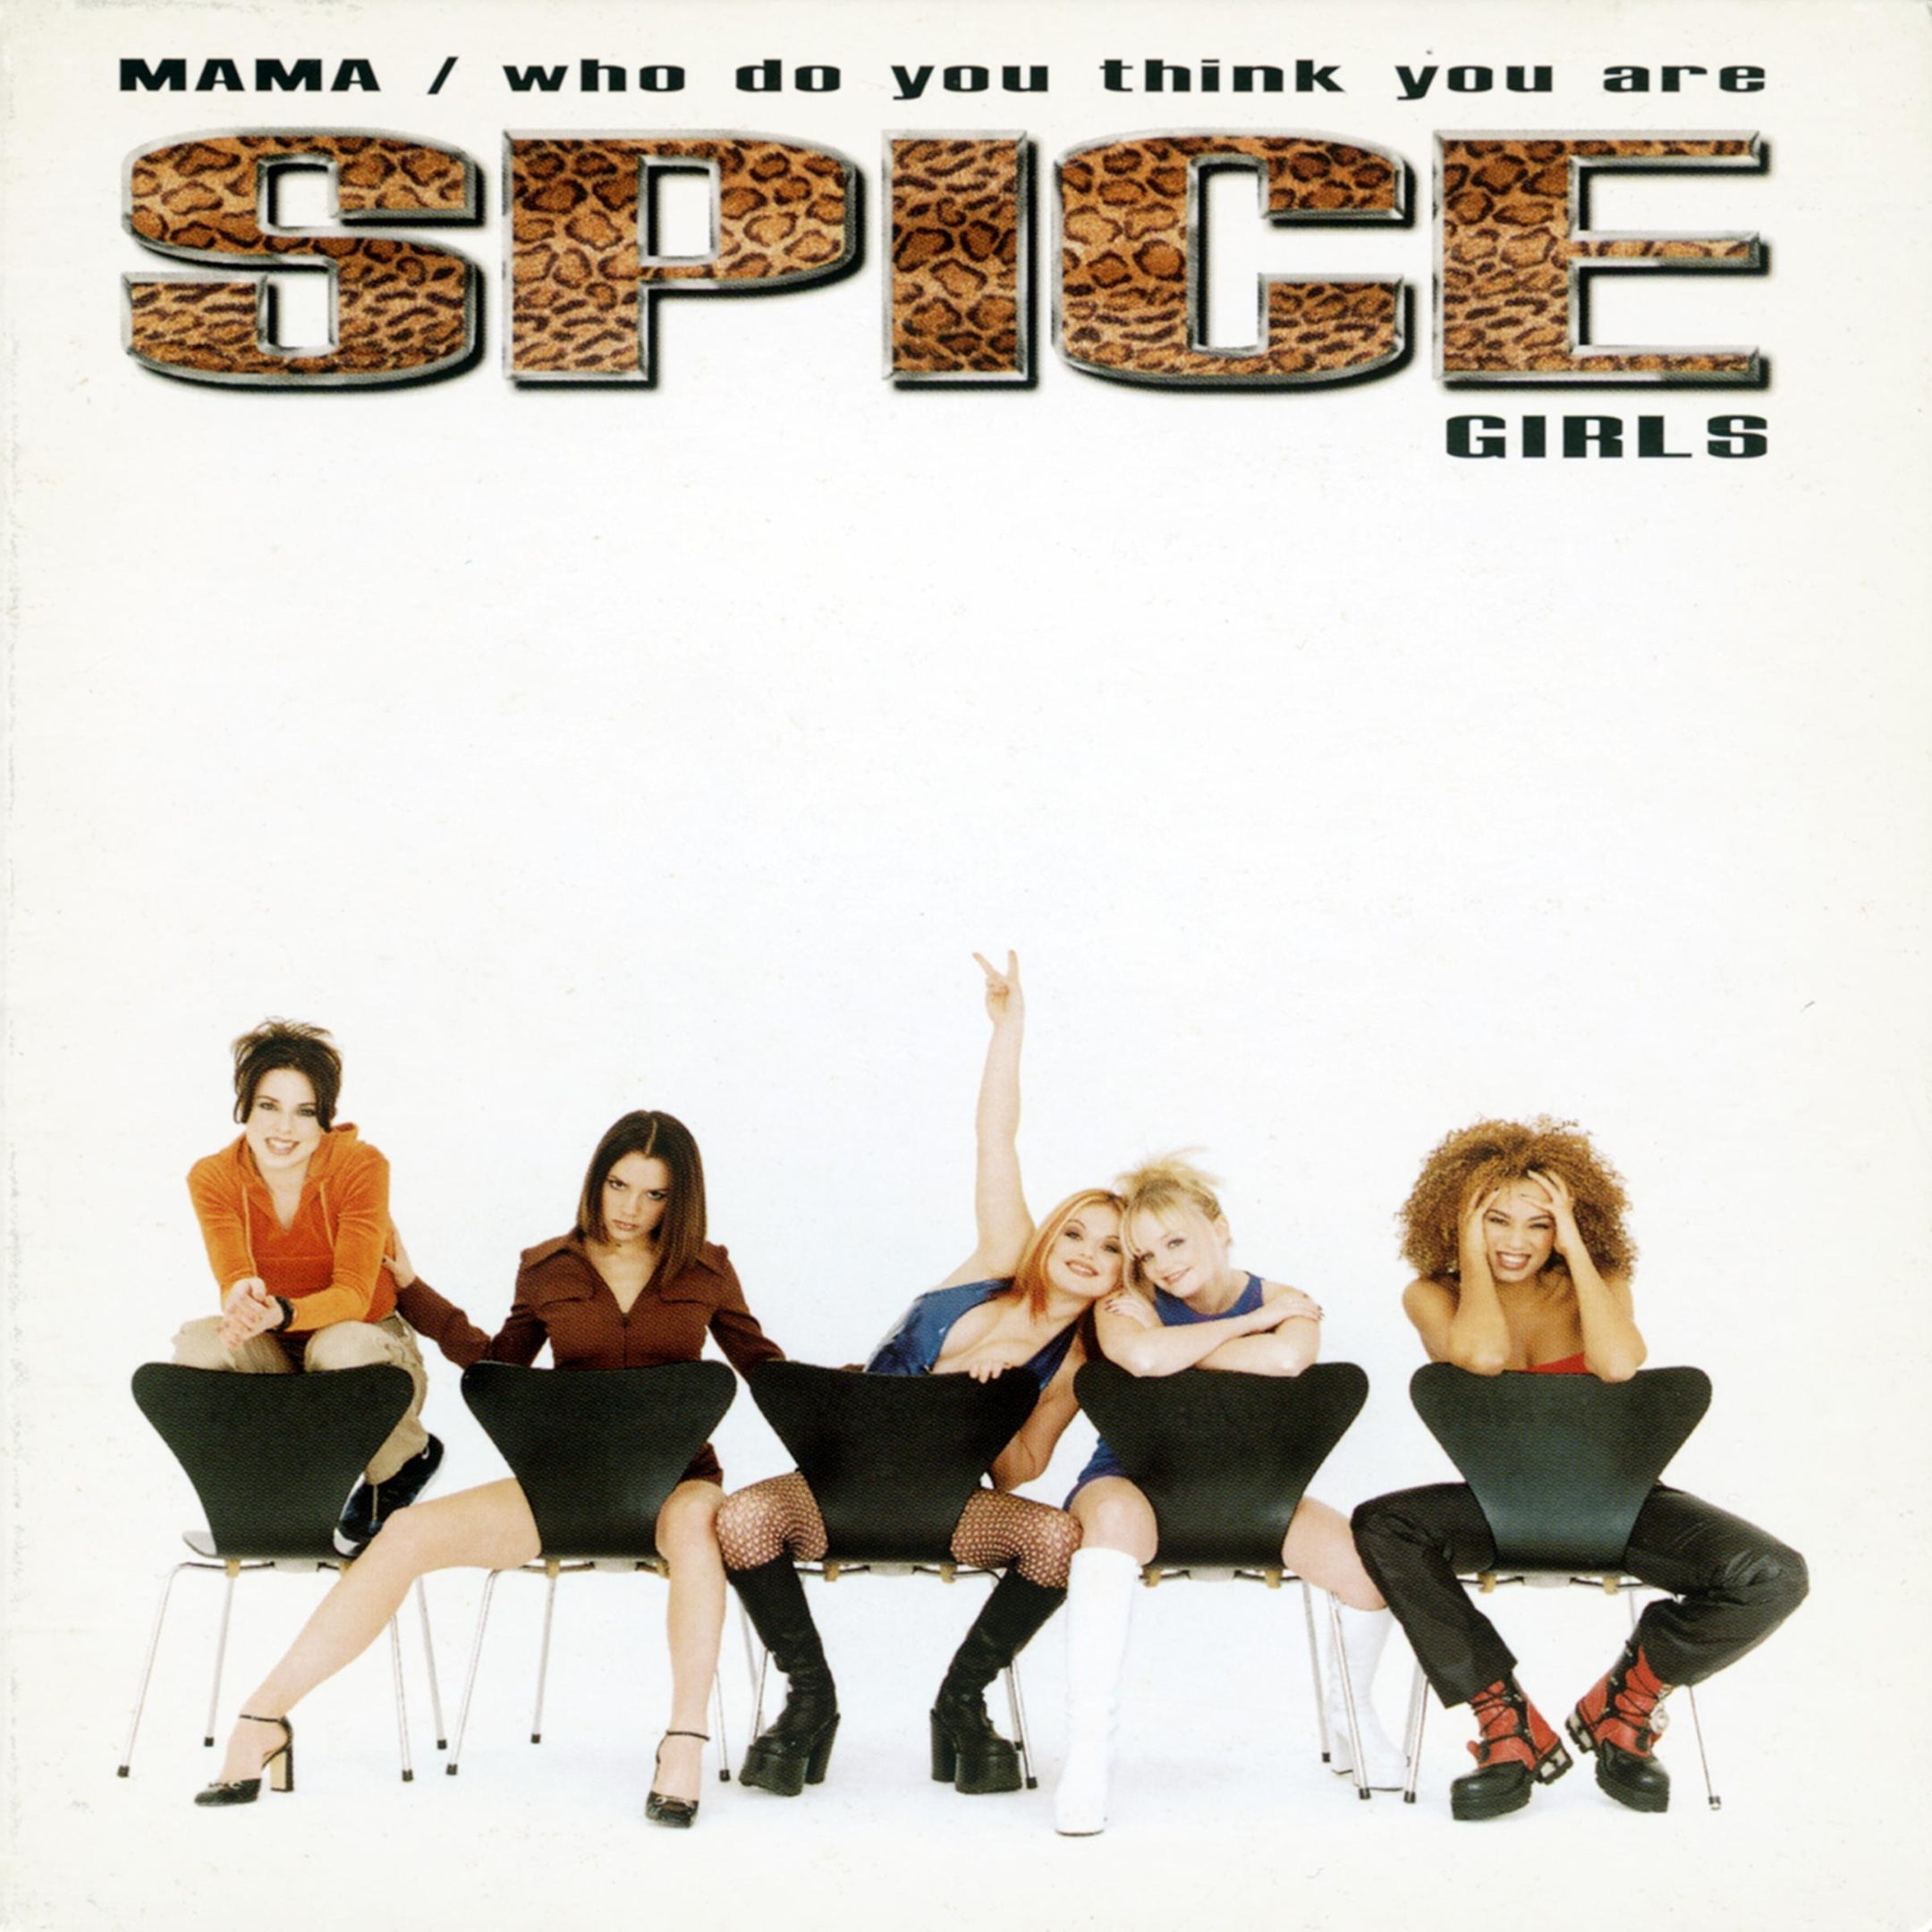 Spice Girls album Mama/Who Do You Think You Are